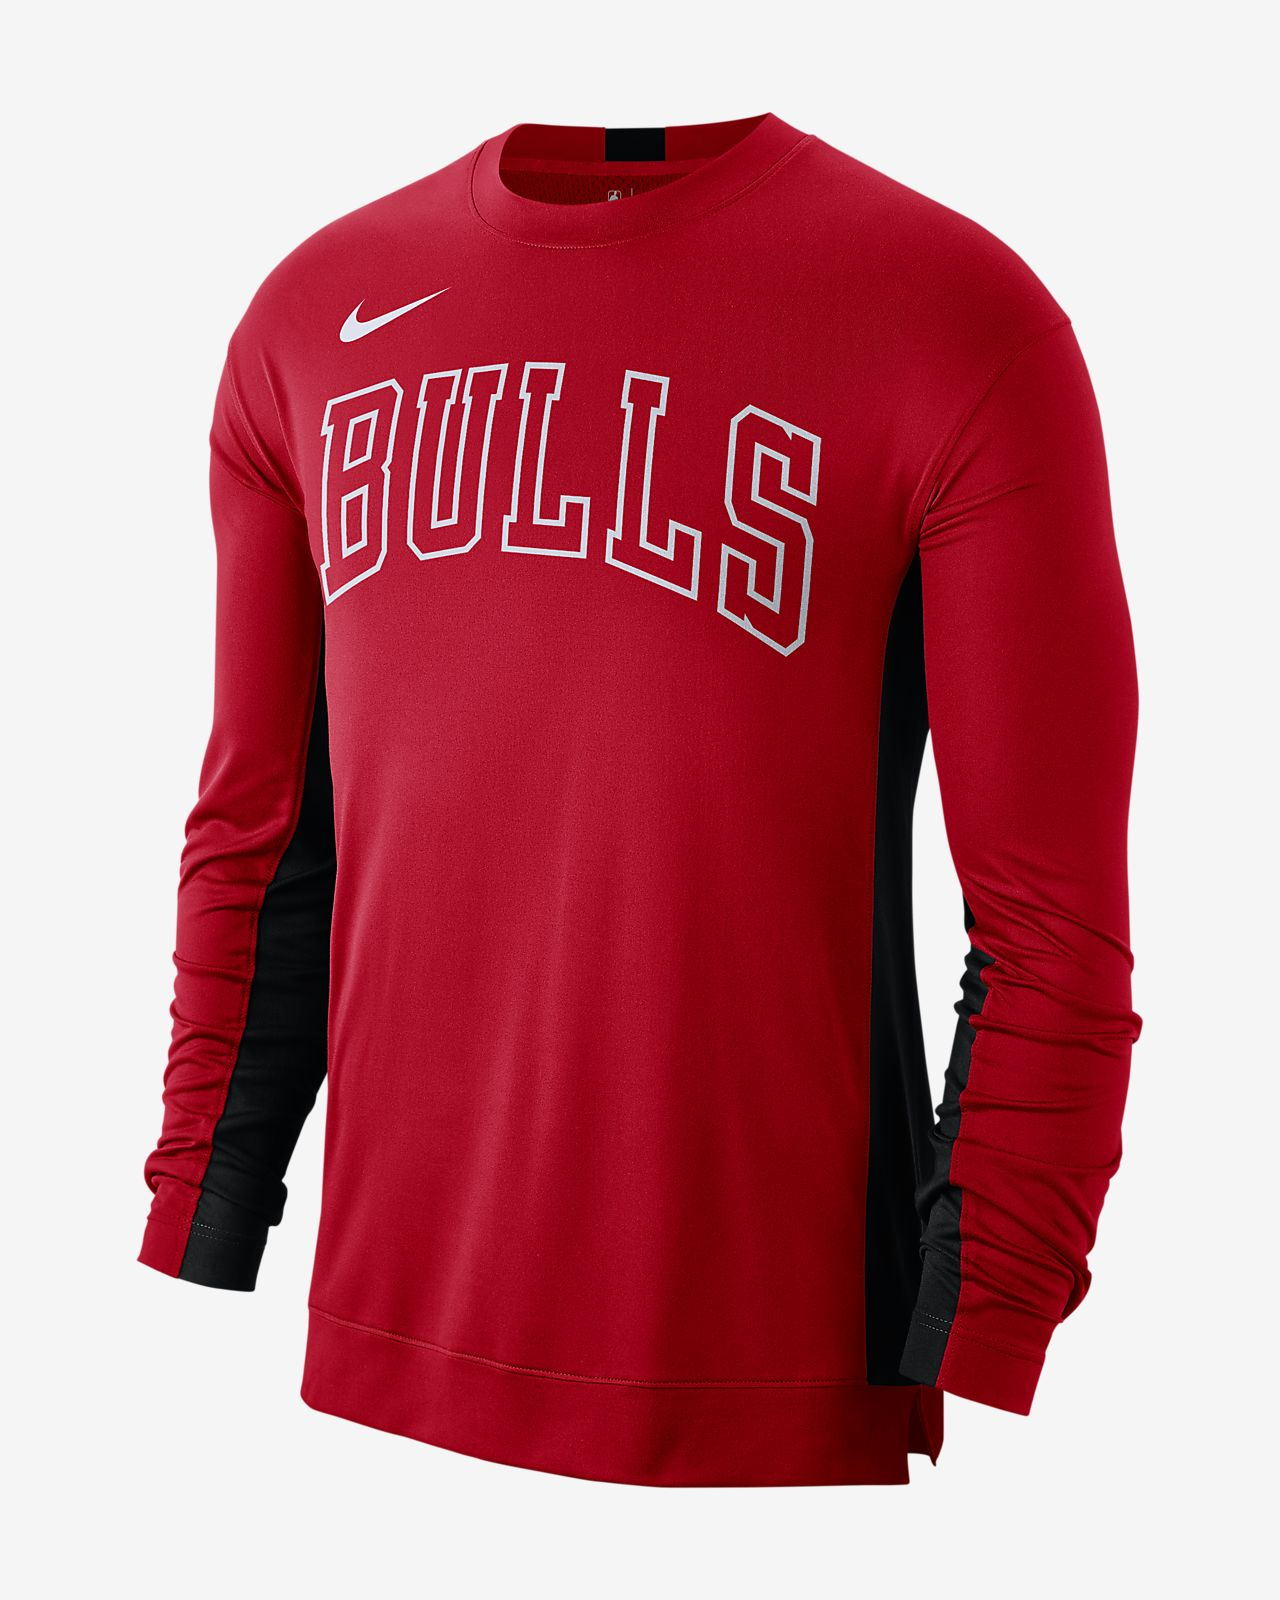 Chicago Bulls Nike Dri-FIT Men's NBA Shooting Top